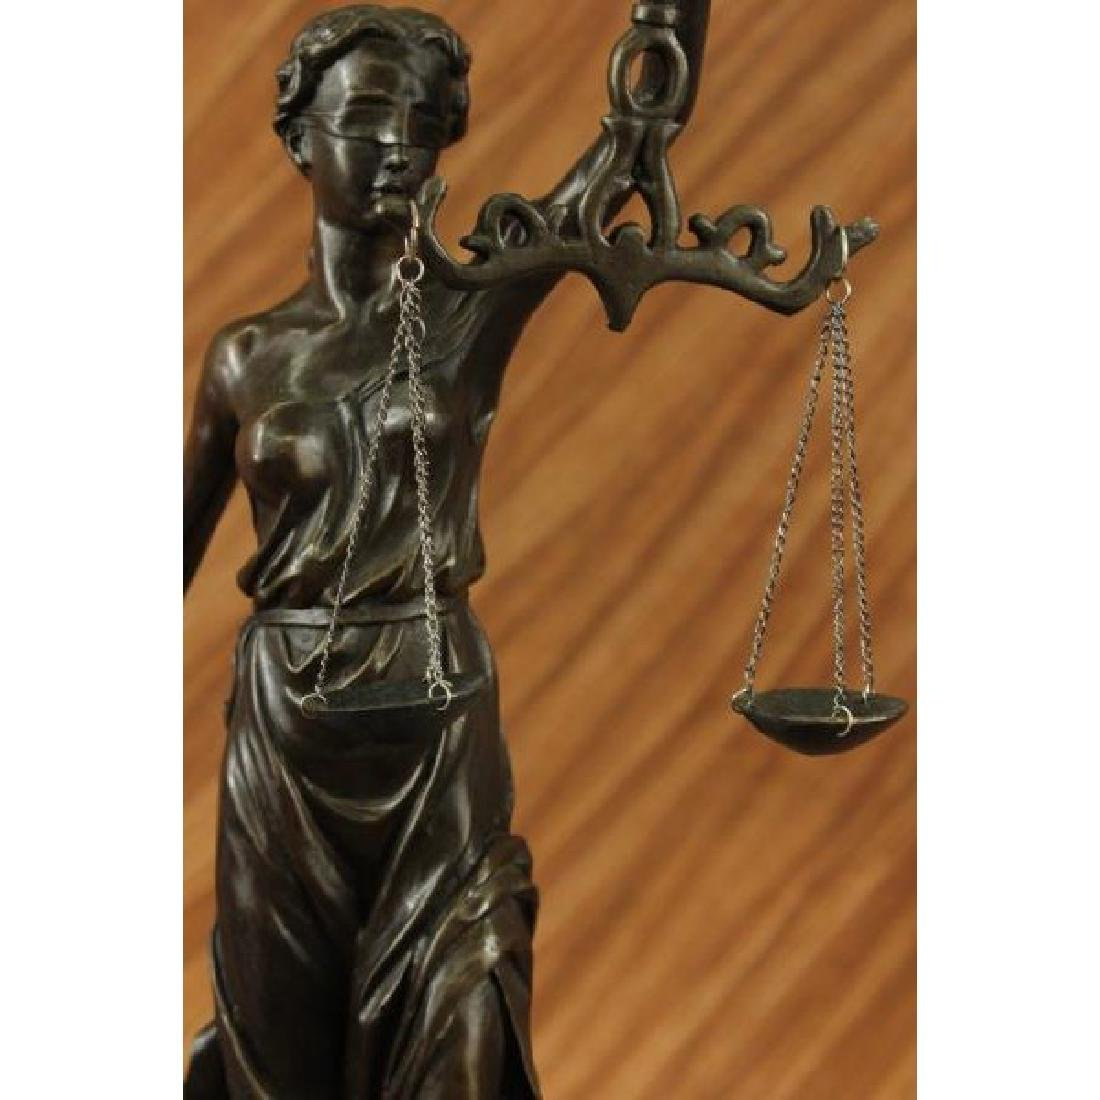 Blind Justice - Scale of Justice Bronze Sculpture - 5